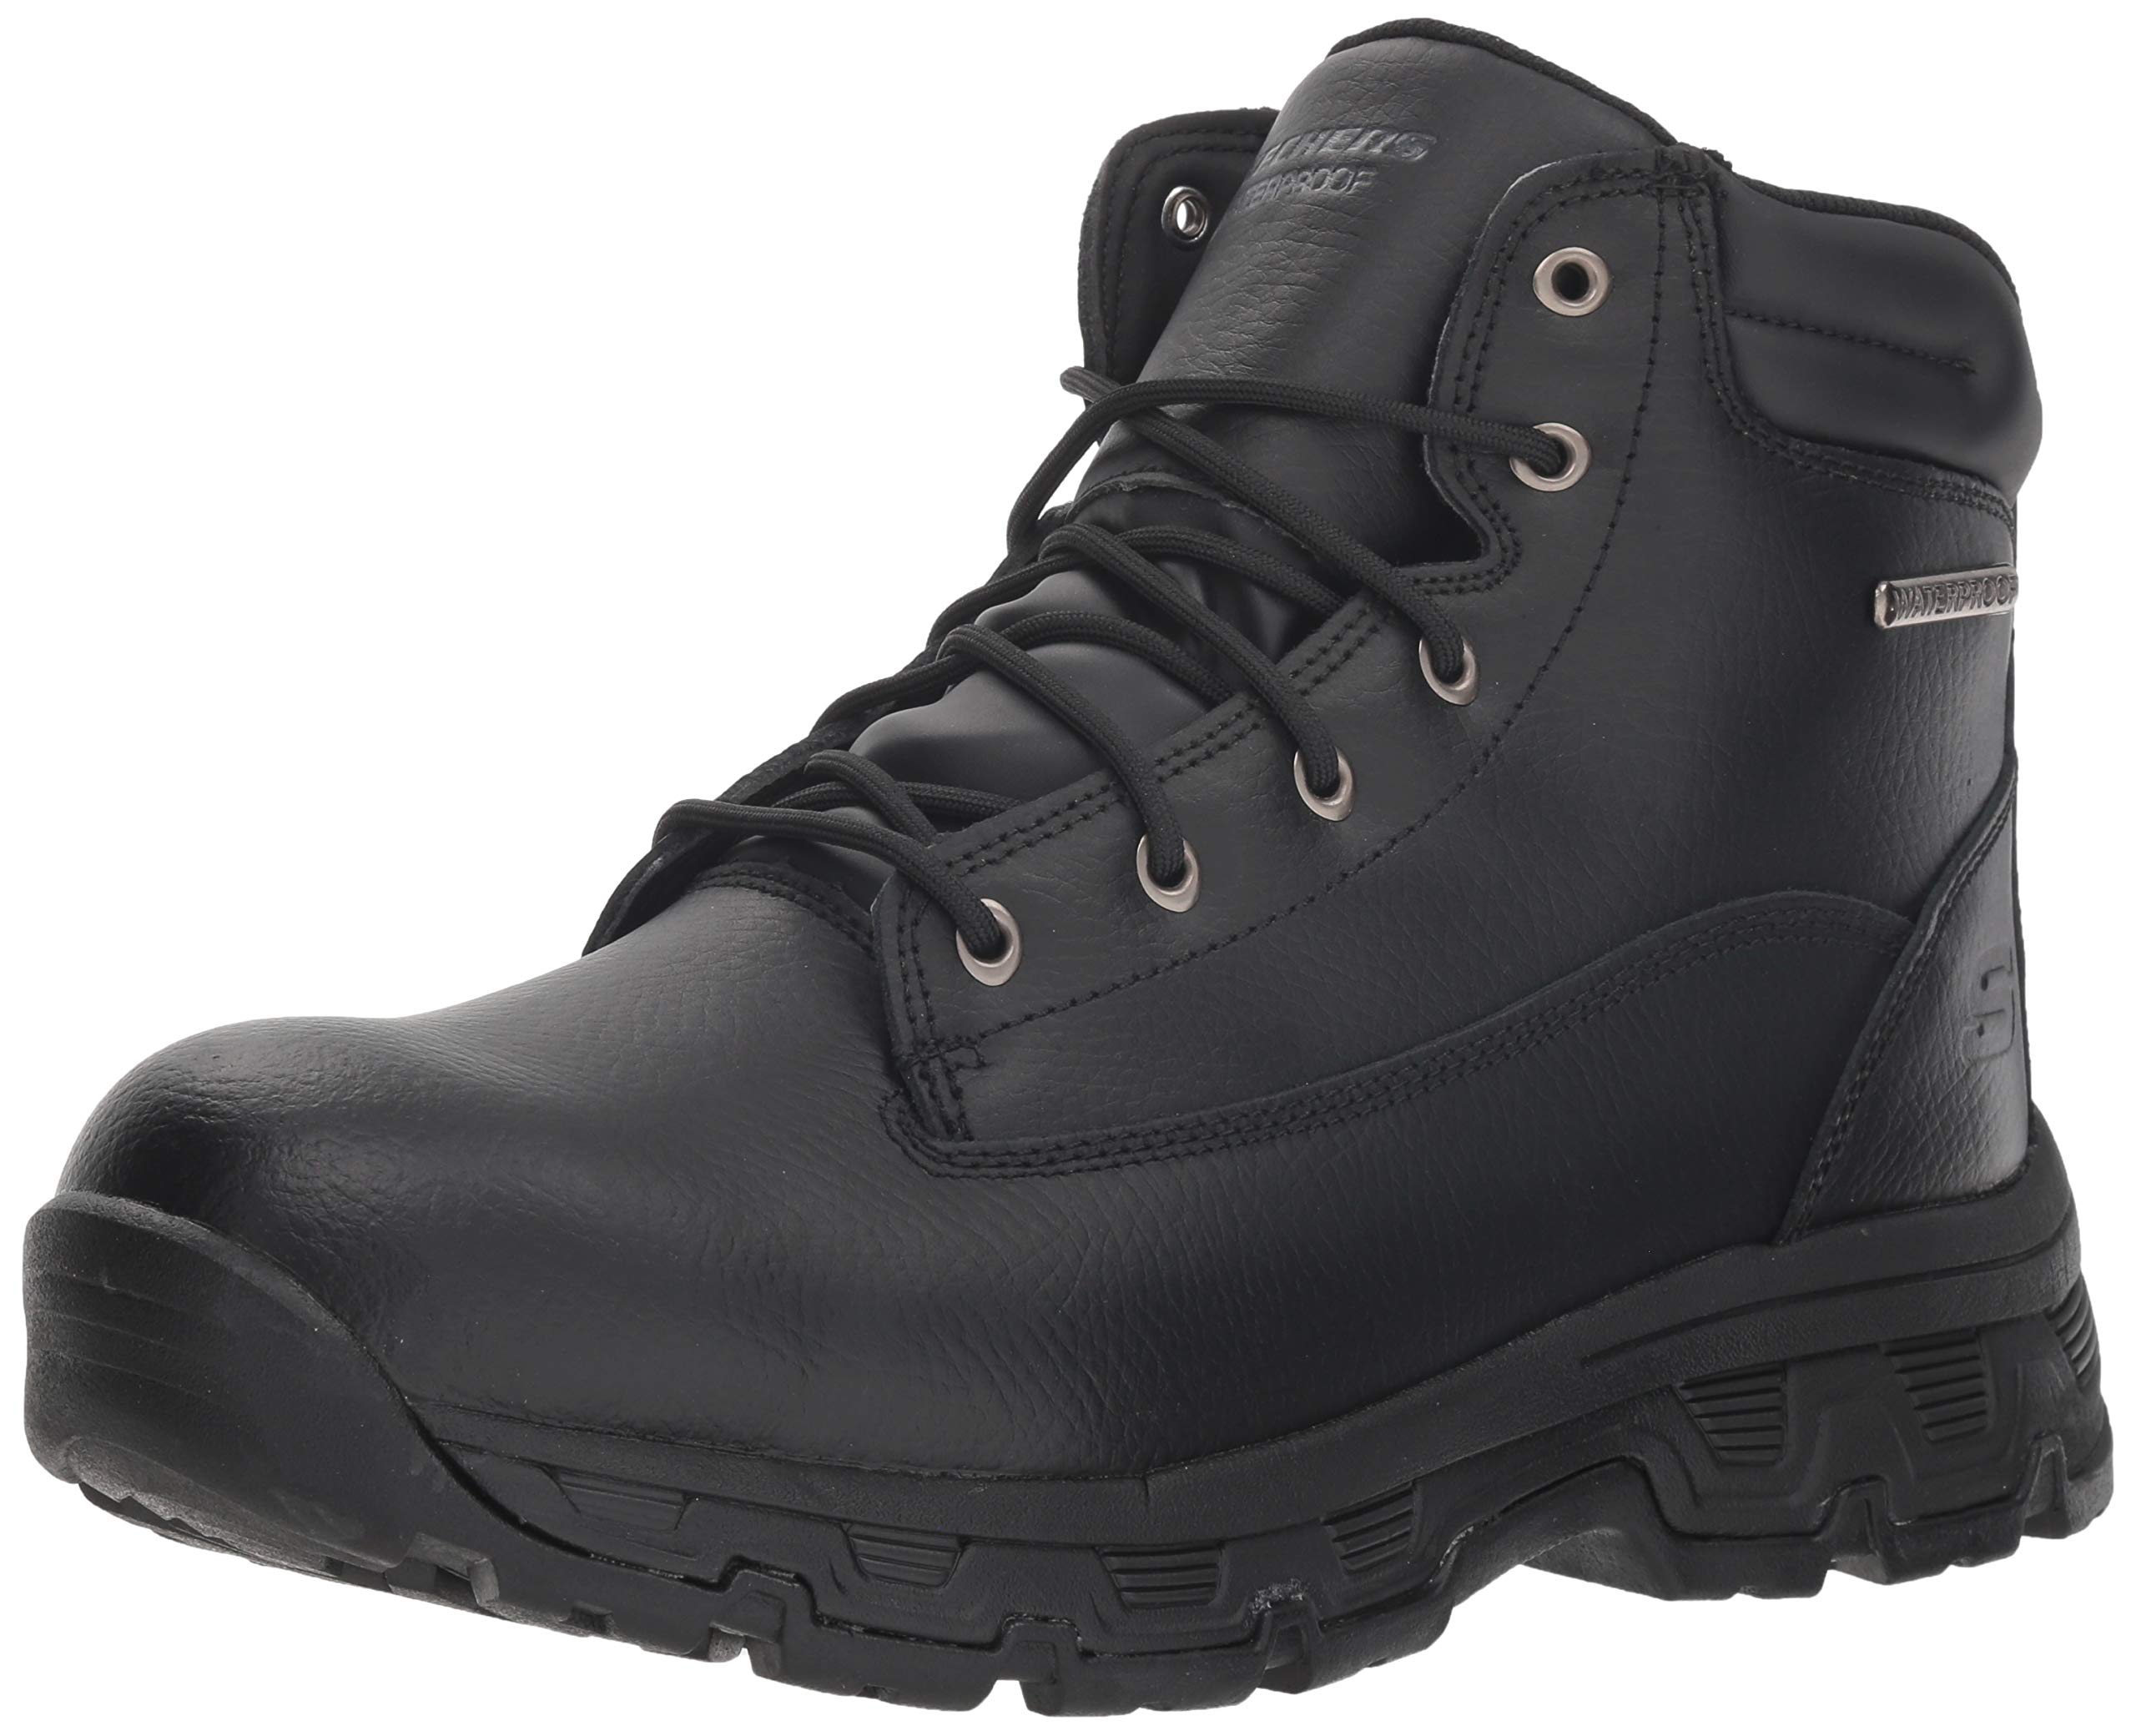 Skechers Men's Morson-SINATRO Hiking